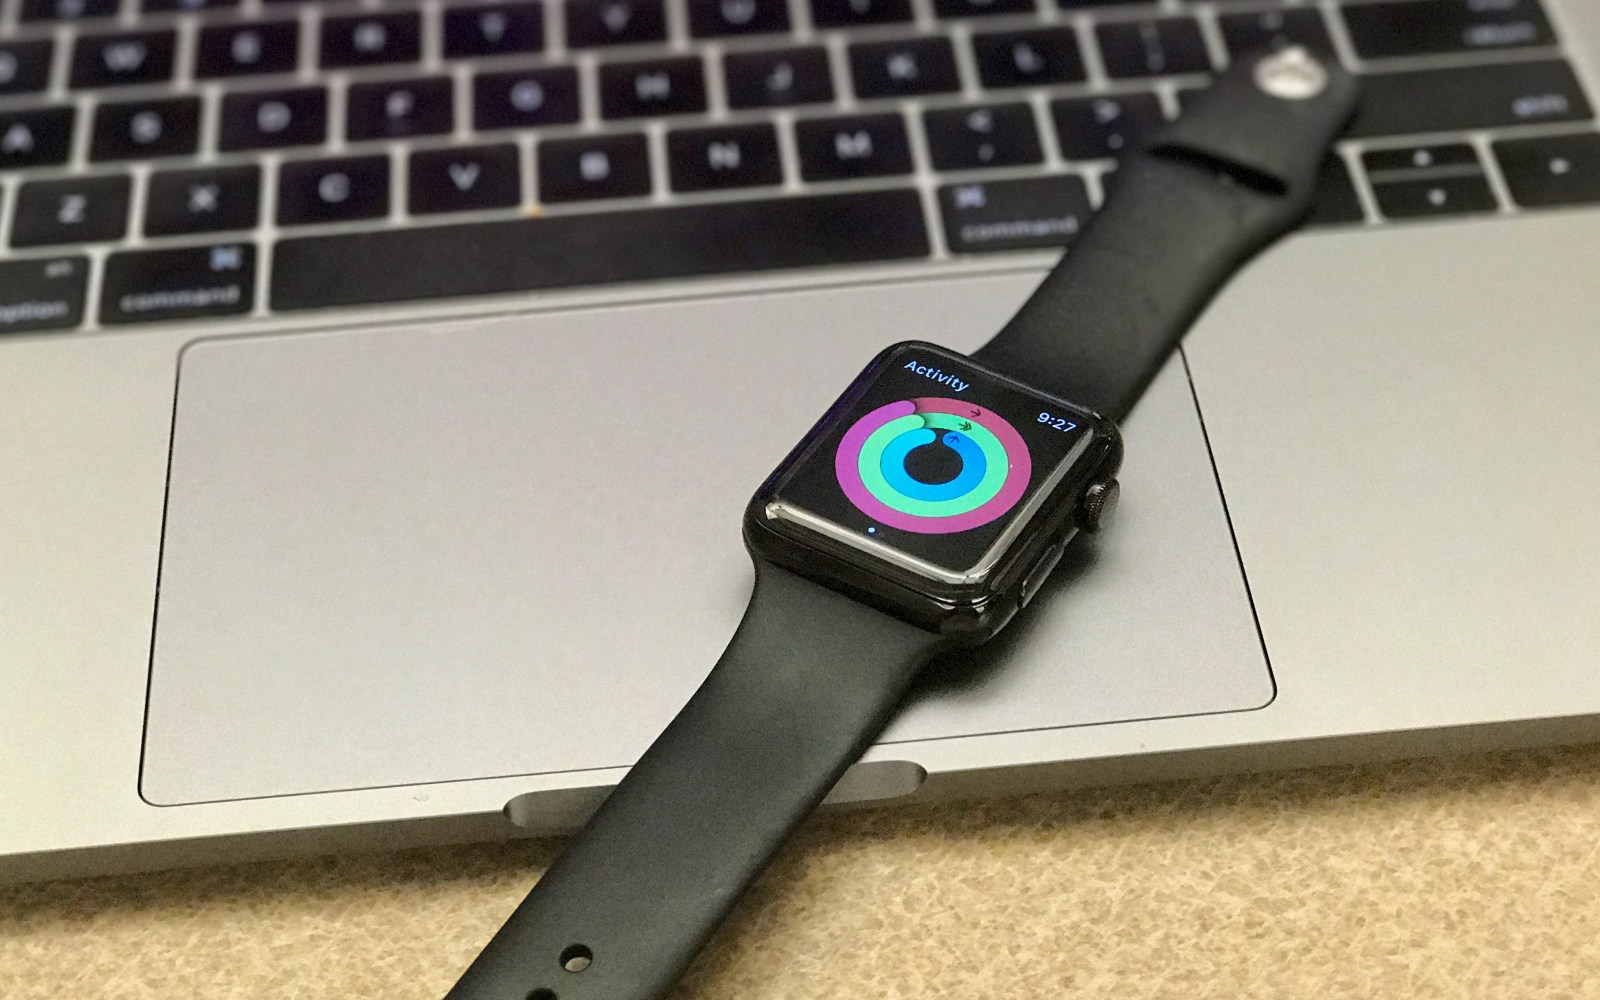 With Apple Watch prices falling and Jawbone's exit, is there still a market for dedicated fitness trackers? [Poll]